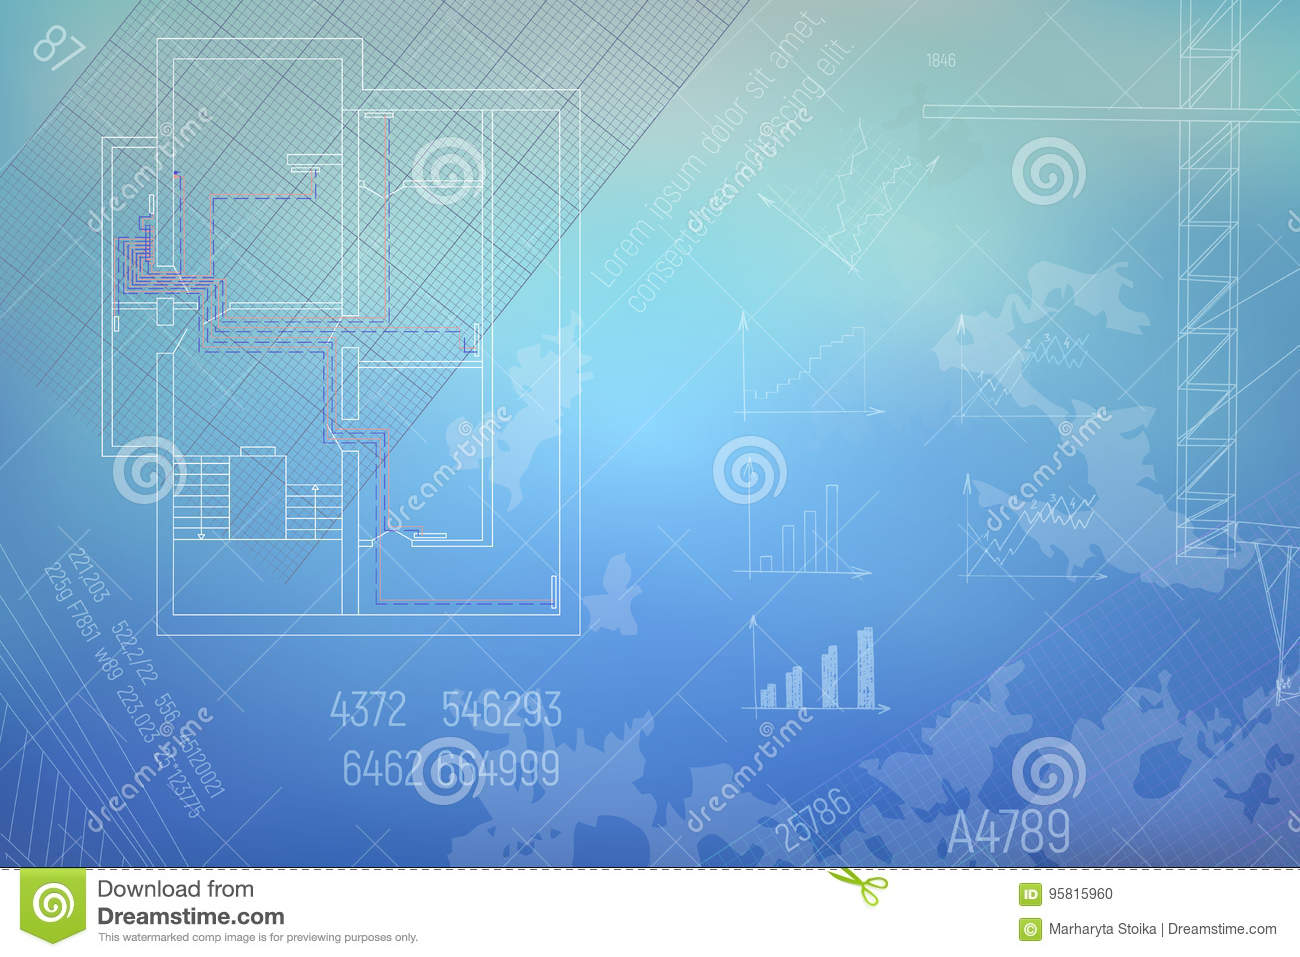 Hvac Engineering Drawing Part Of Technical Draft Vector For Download Illustration Stock